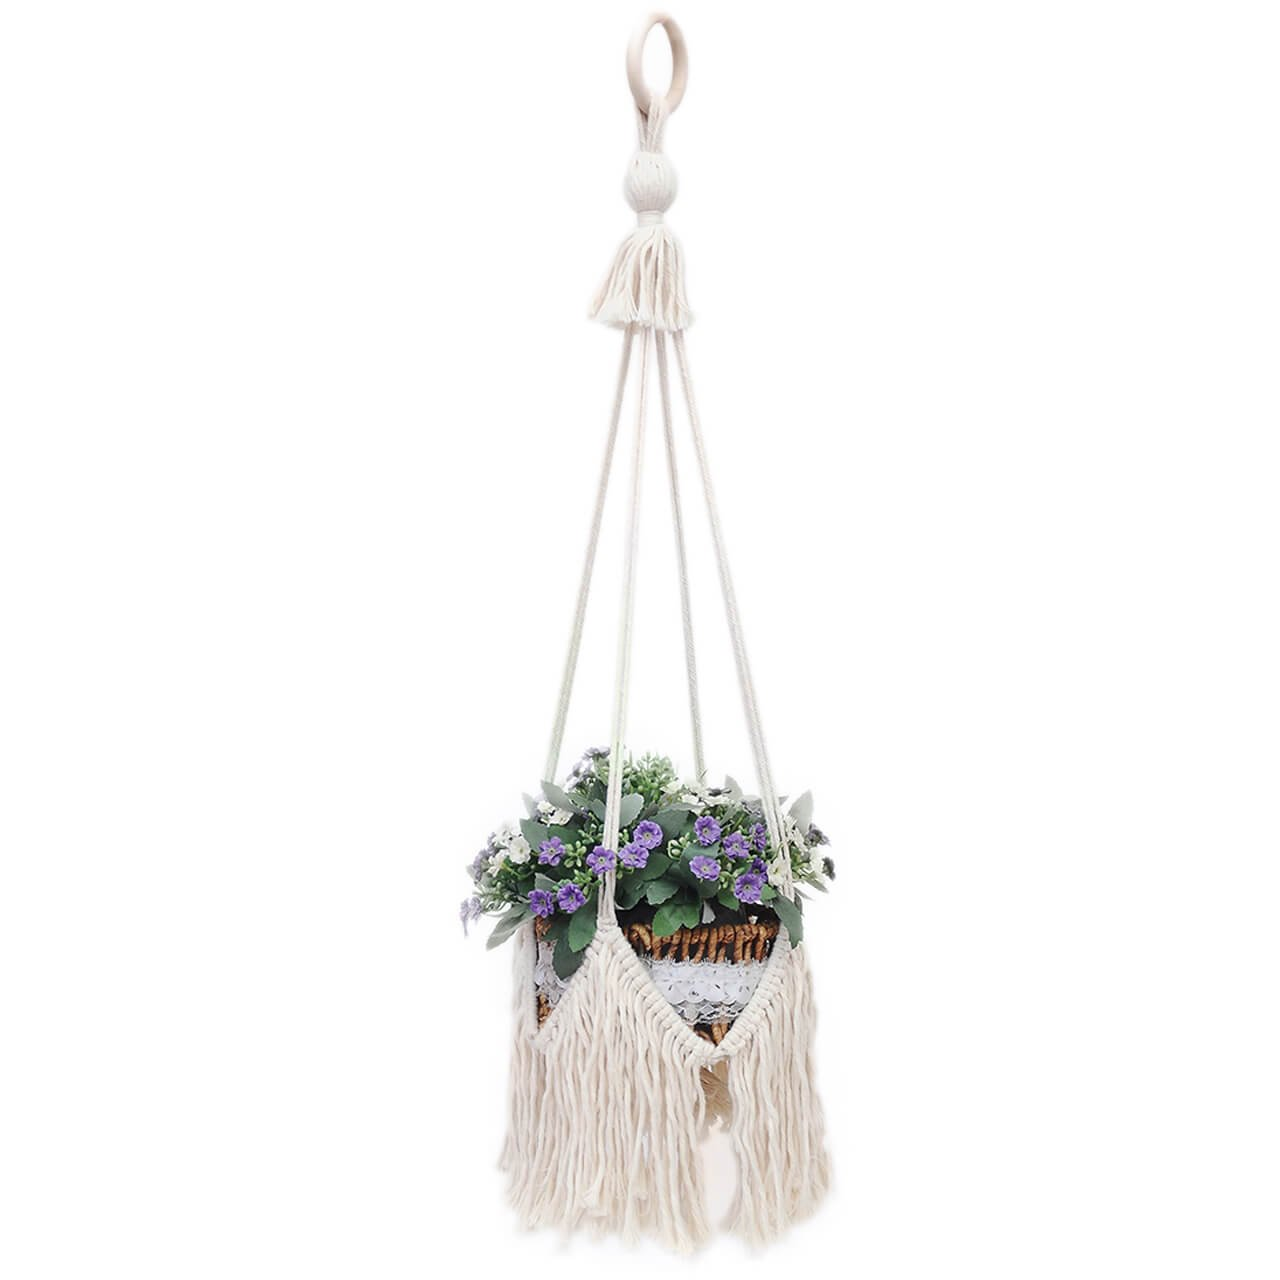 Hanging Shelf Macrame Plant Hanger Flower Pot Holder Boho Home Decor with Wood Plate Price Remains Stable